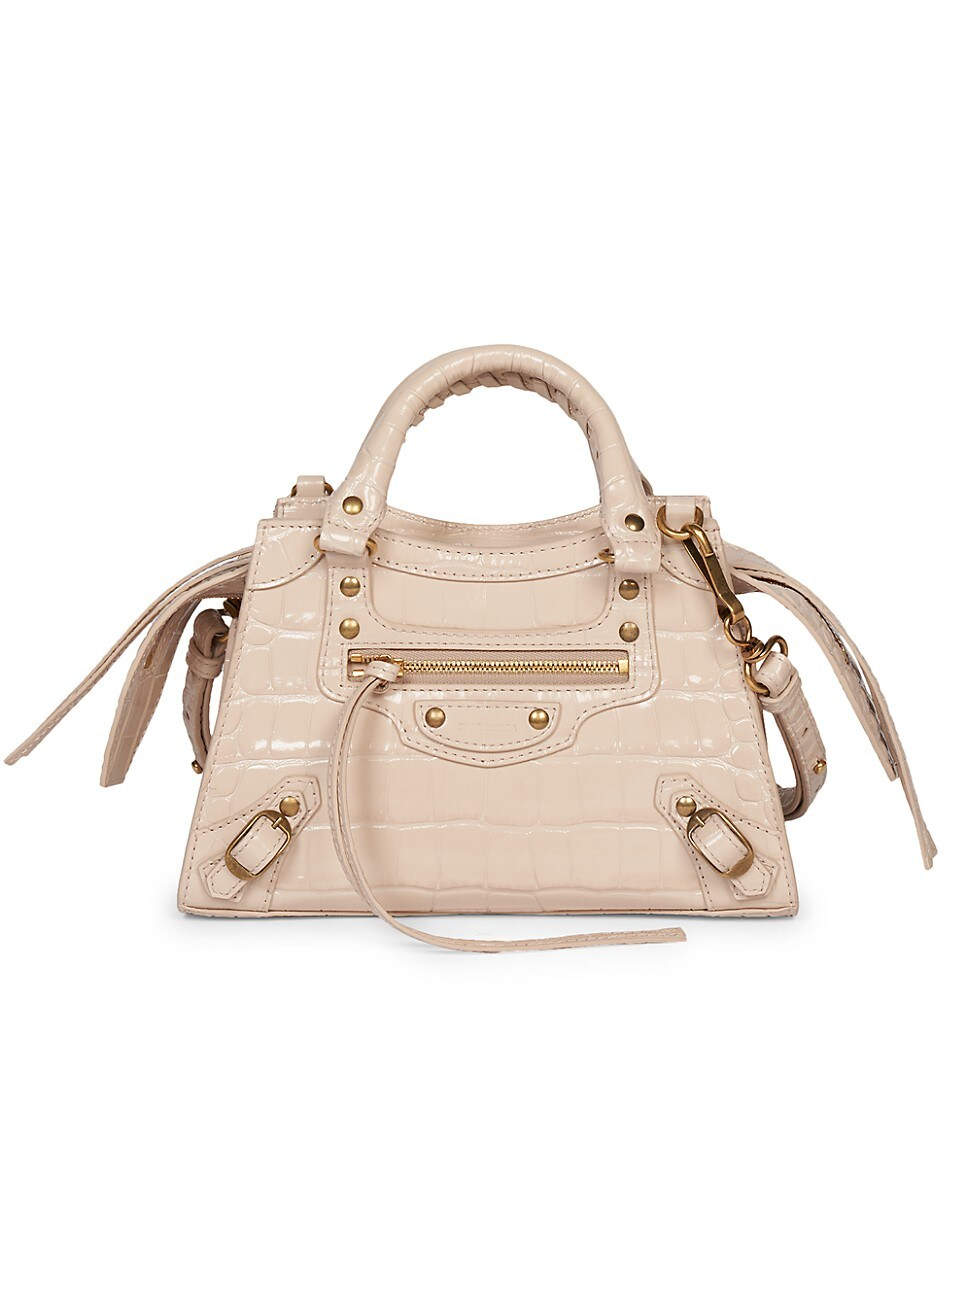 Balenciaga WOMEN'S MINI NEO CLASSIC CITY CROC-EMBOSSED LEATHER SATCHEL